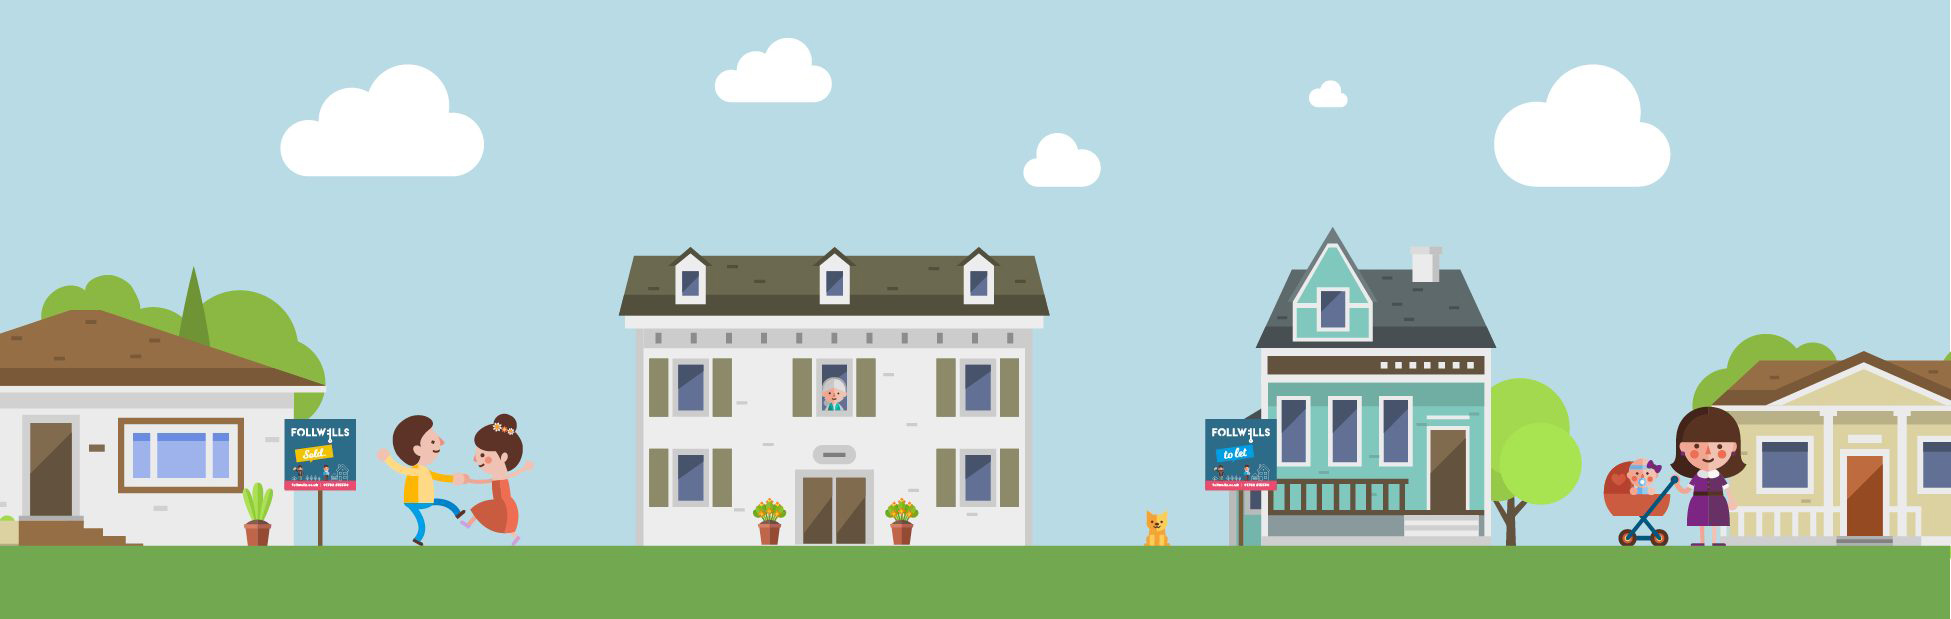 Follwells Header image with illustrations of homes and people